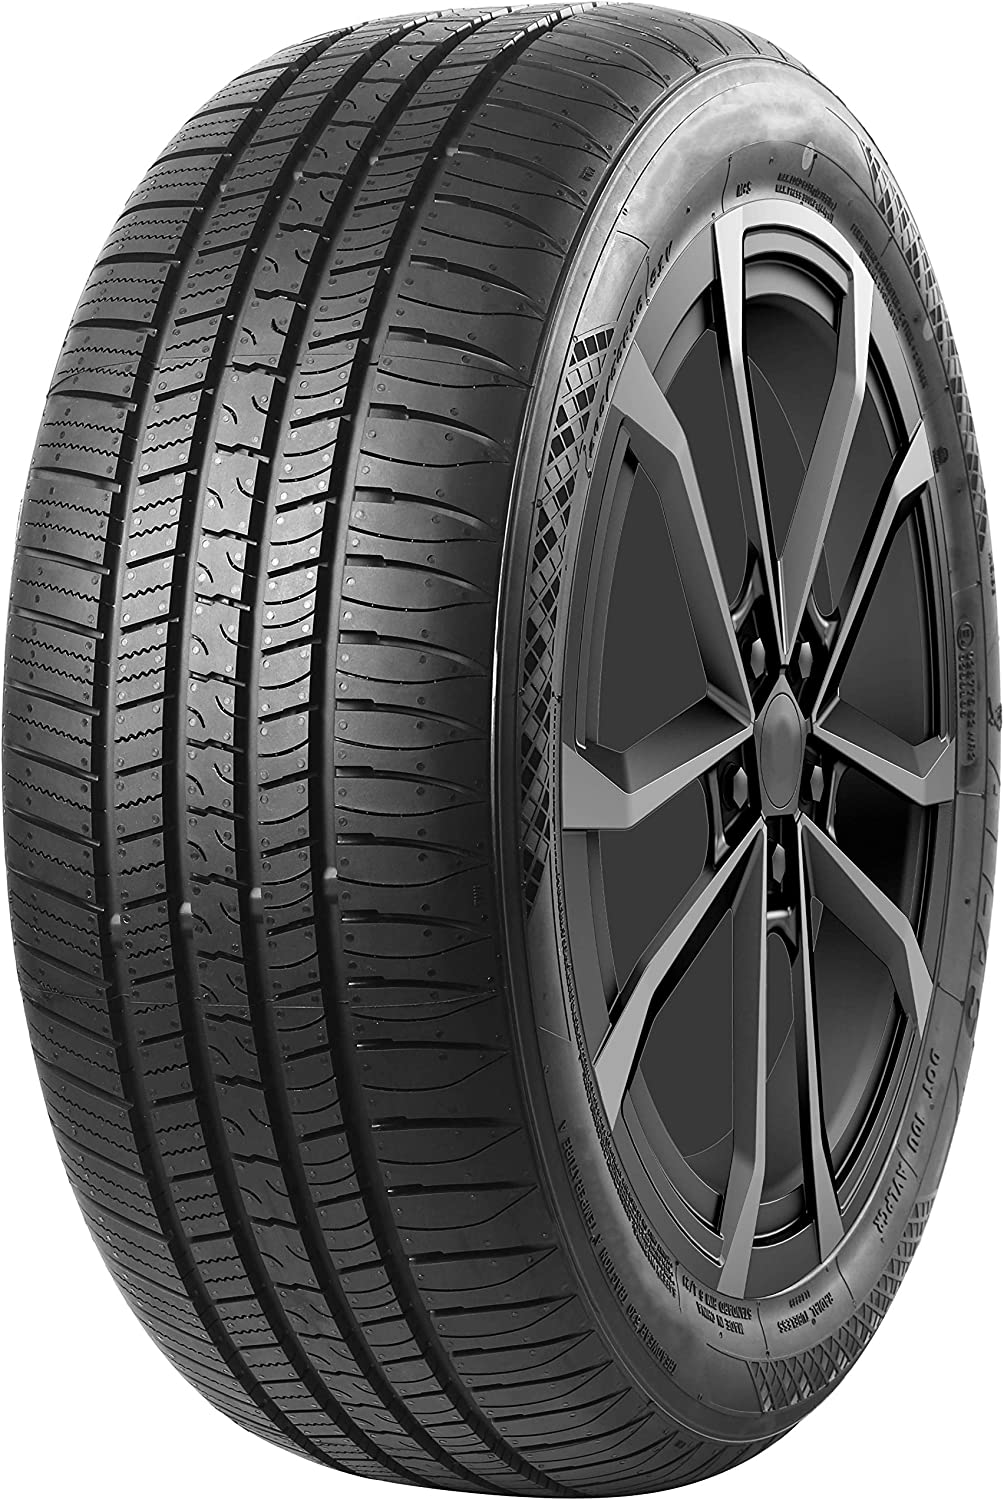 Atlas FORCE HP All-Season Radial Tire - 225/60R17 99H